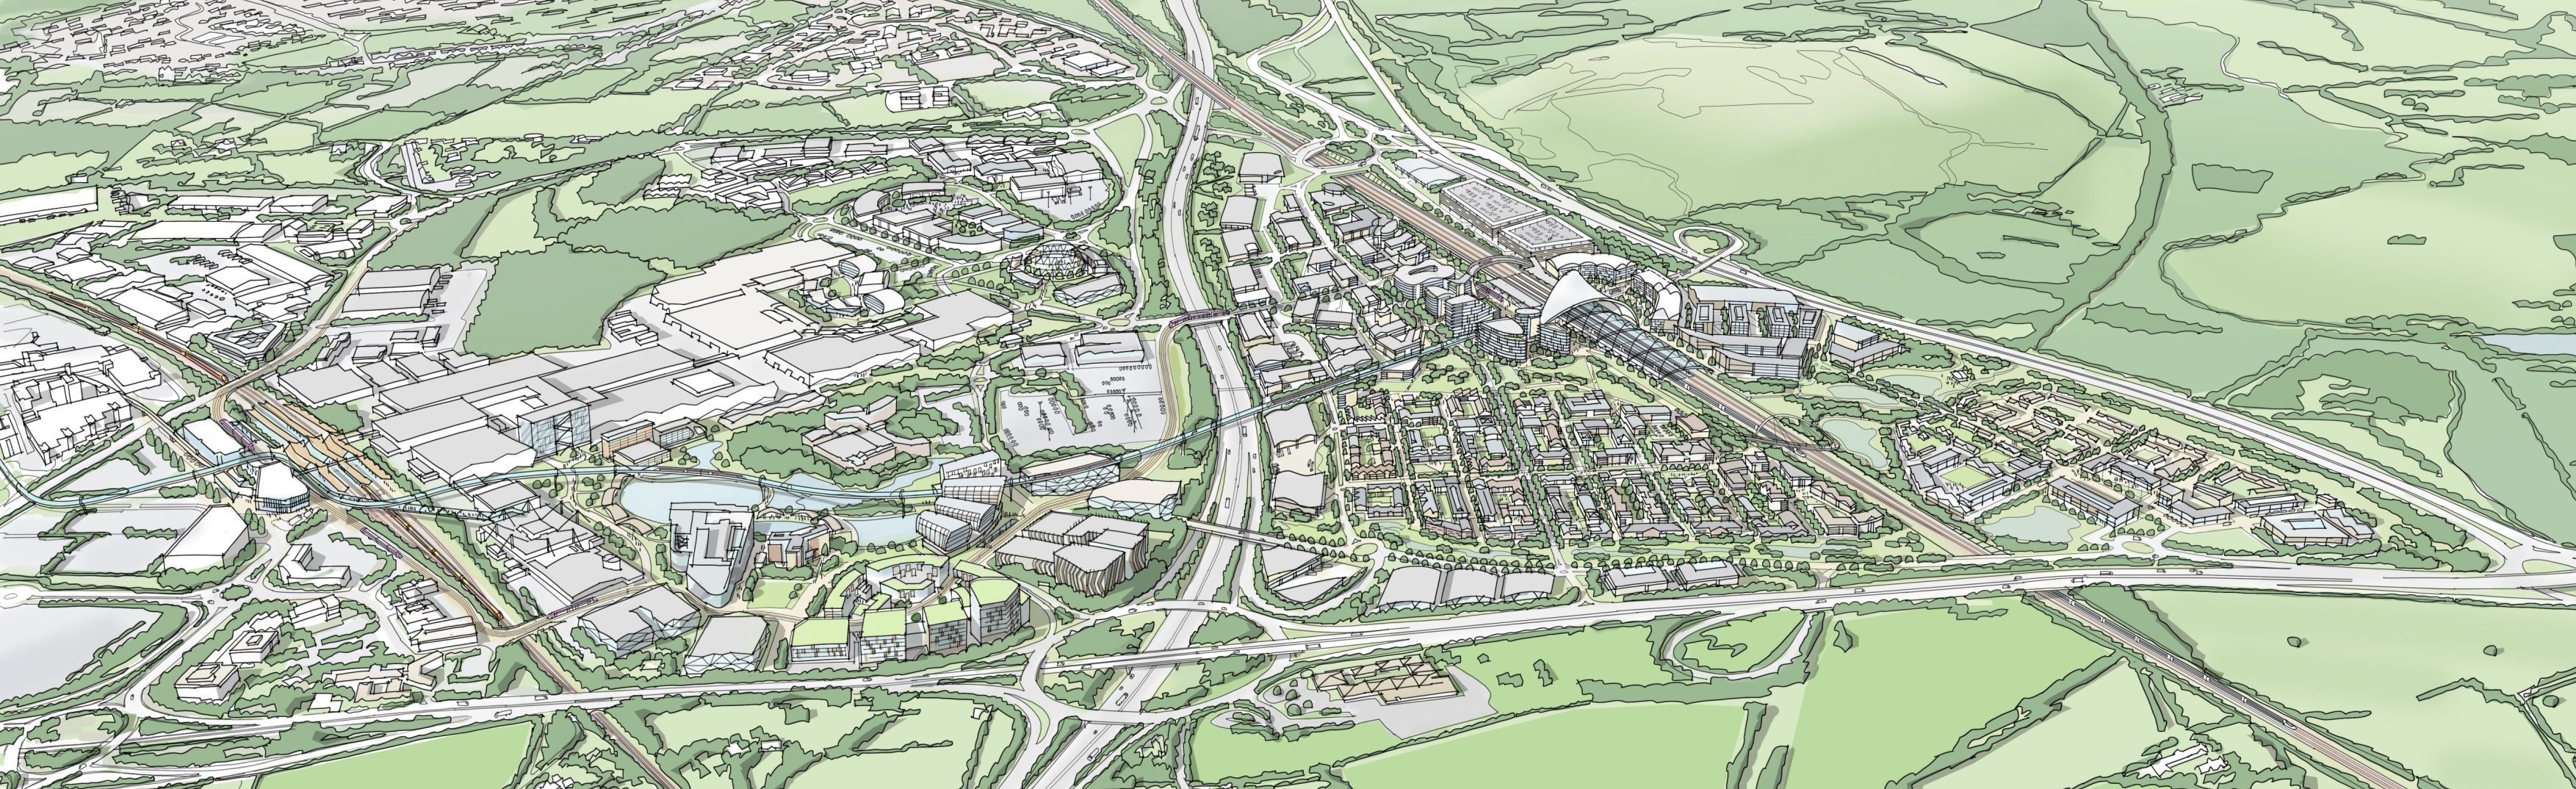 2018-10/the-ugc-s-ambitions-for-the-wider-hs2-interchange-station-site